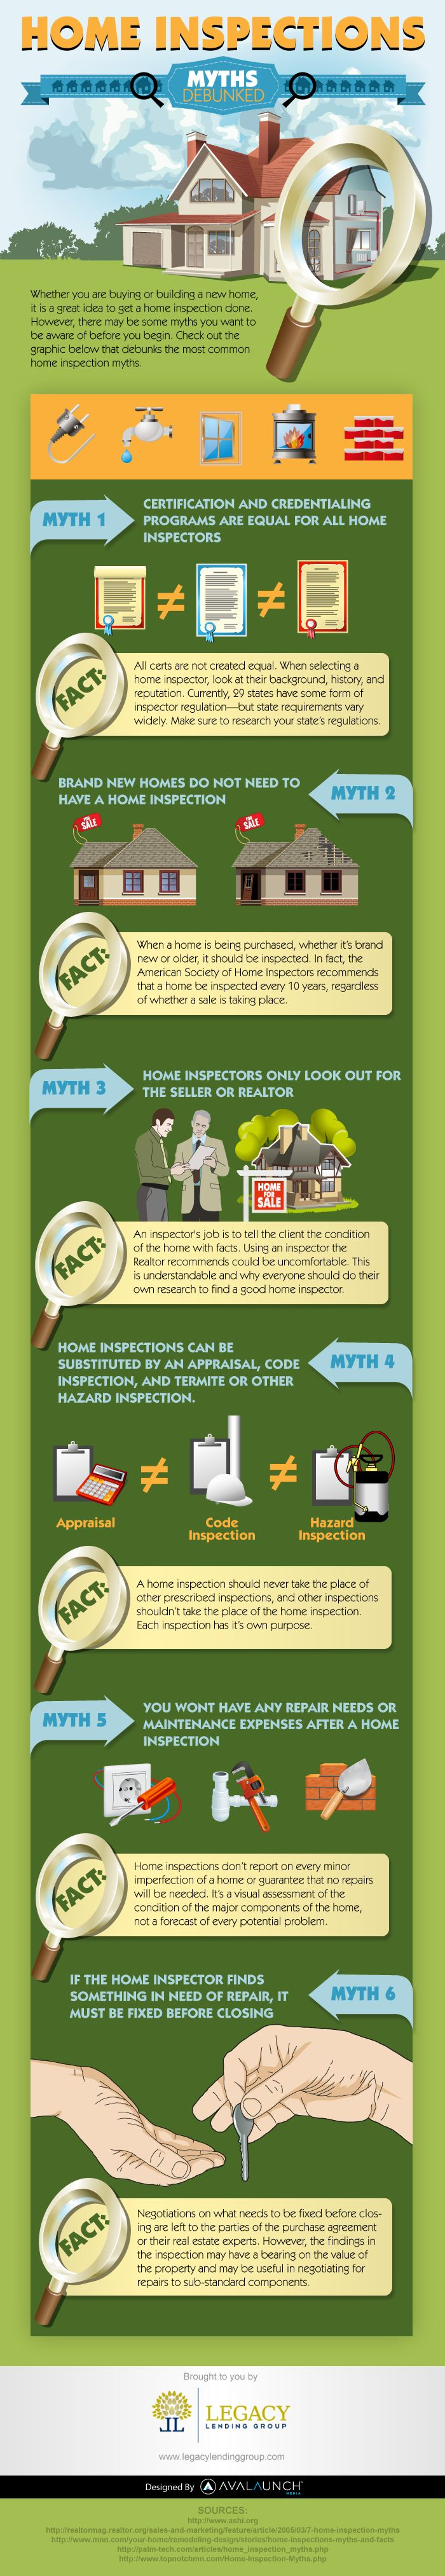 Facts about buying a home - 17 Best Images About Advice Tips For Buying A Home On Pinterest Home Inspection A House And Renting